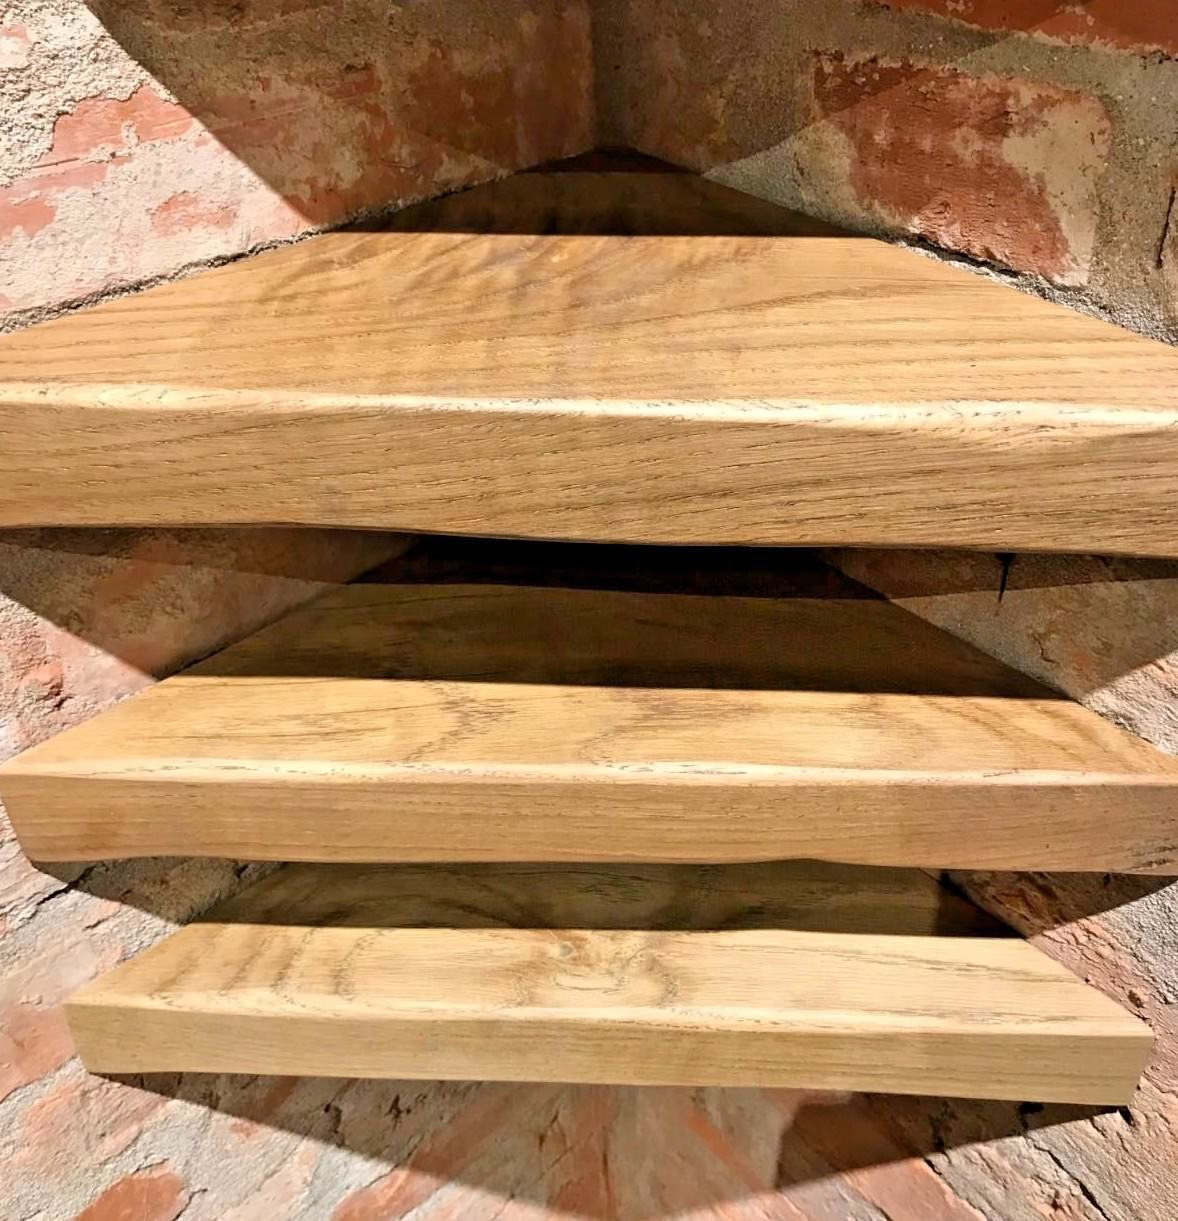 solid oak floating corner shelf little love farm shelves under bath storage ideas diy garage shoe rack office desk hidden gun safe magnetic lock rustic metal closet companies